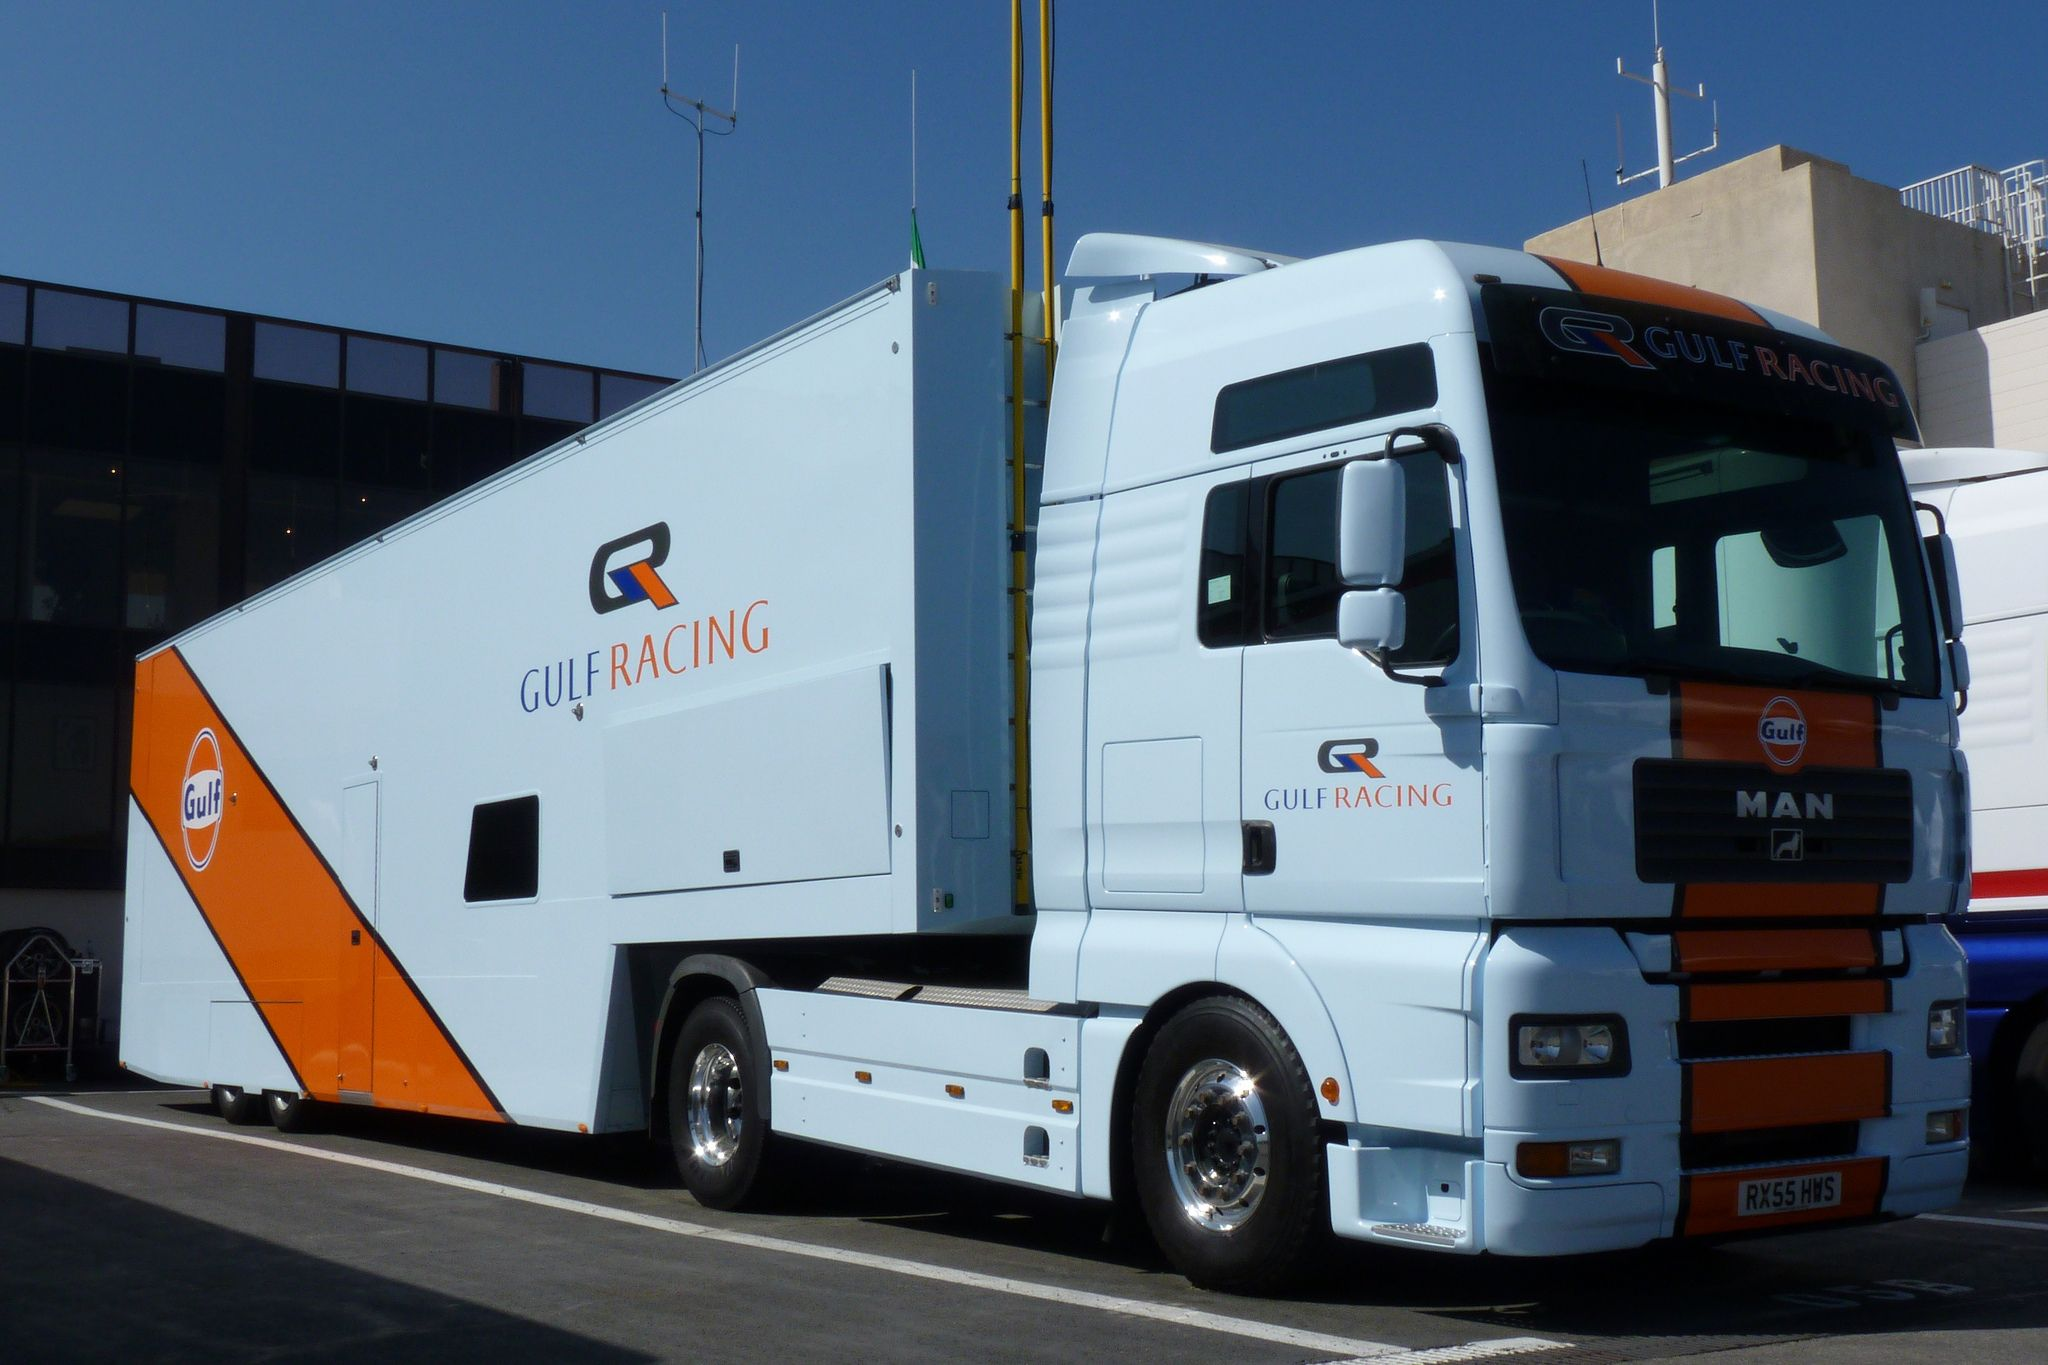 https://flic.kr/p/bJg9jV | Gulf racing truck | How the mythic 'orange & sky blue' livery can transform a truck... this one is the transporter for the Aston Martin Vantage of Roald Goethe & Stuart Hall.